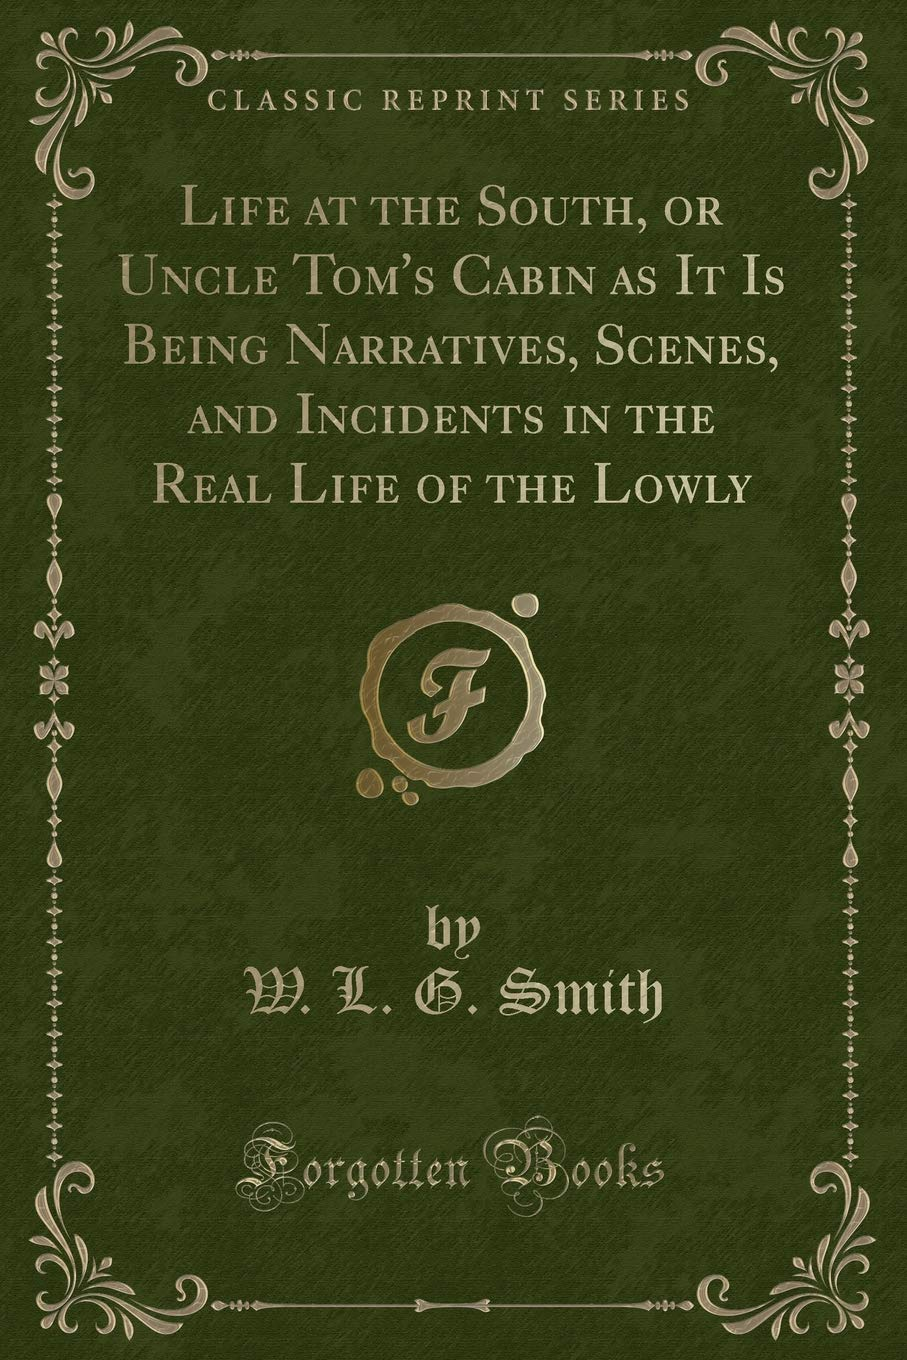 Life at the South, or Uncle Tom's Cabin as It Is Being Narratives, Scenes, and Incidents in the Real Life of the Lowly (Classic Reprint) pdf